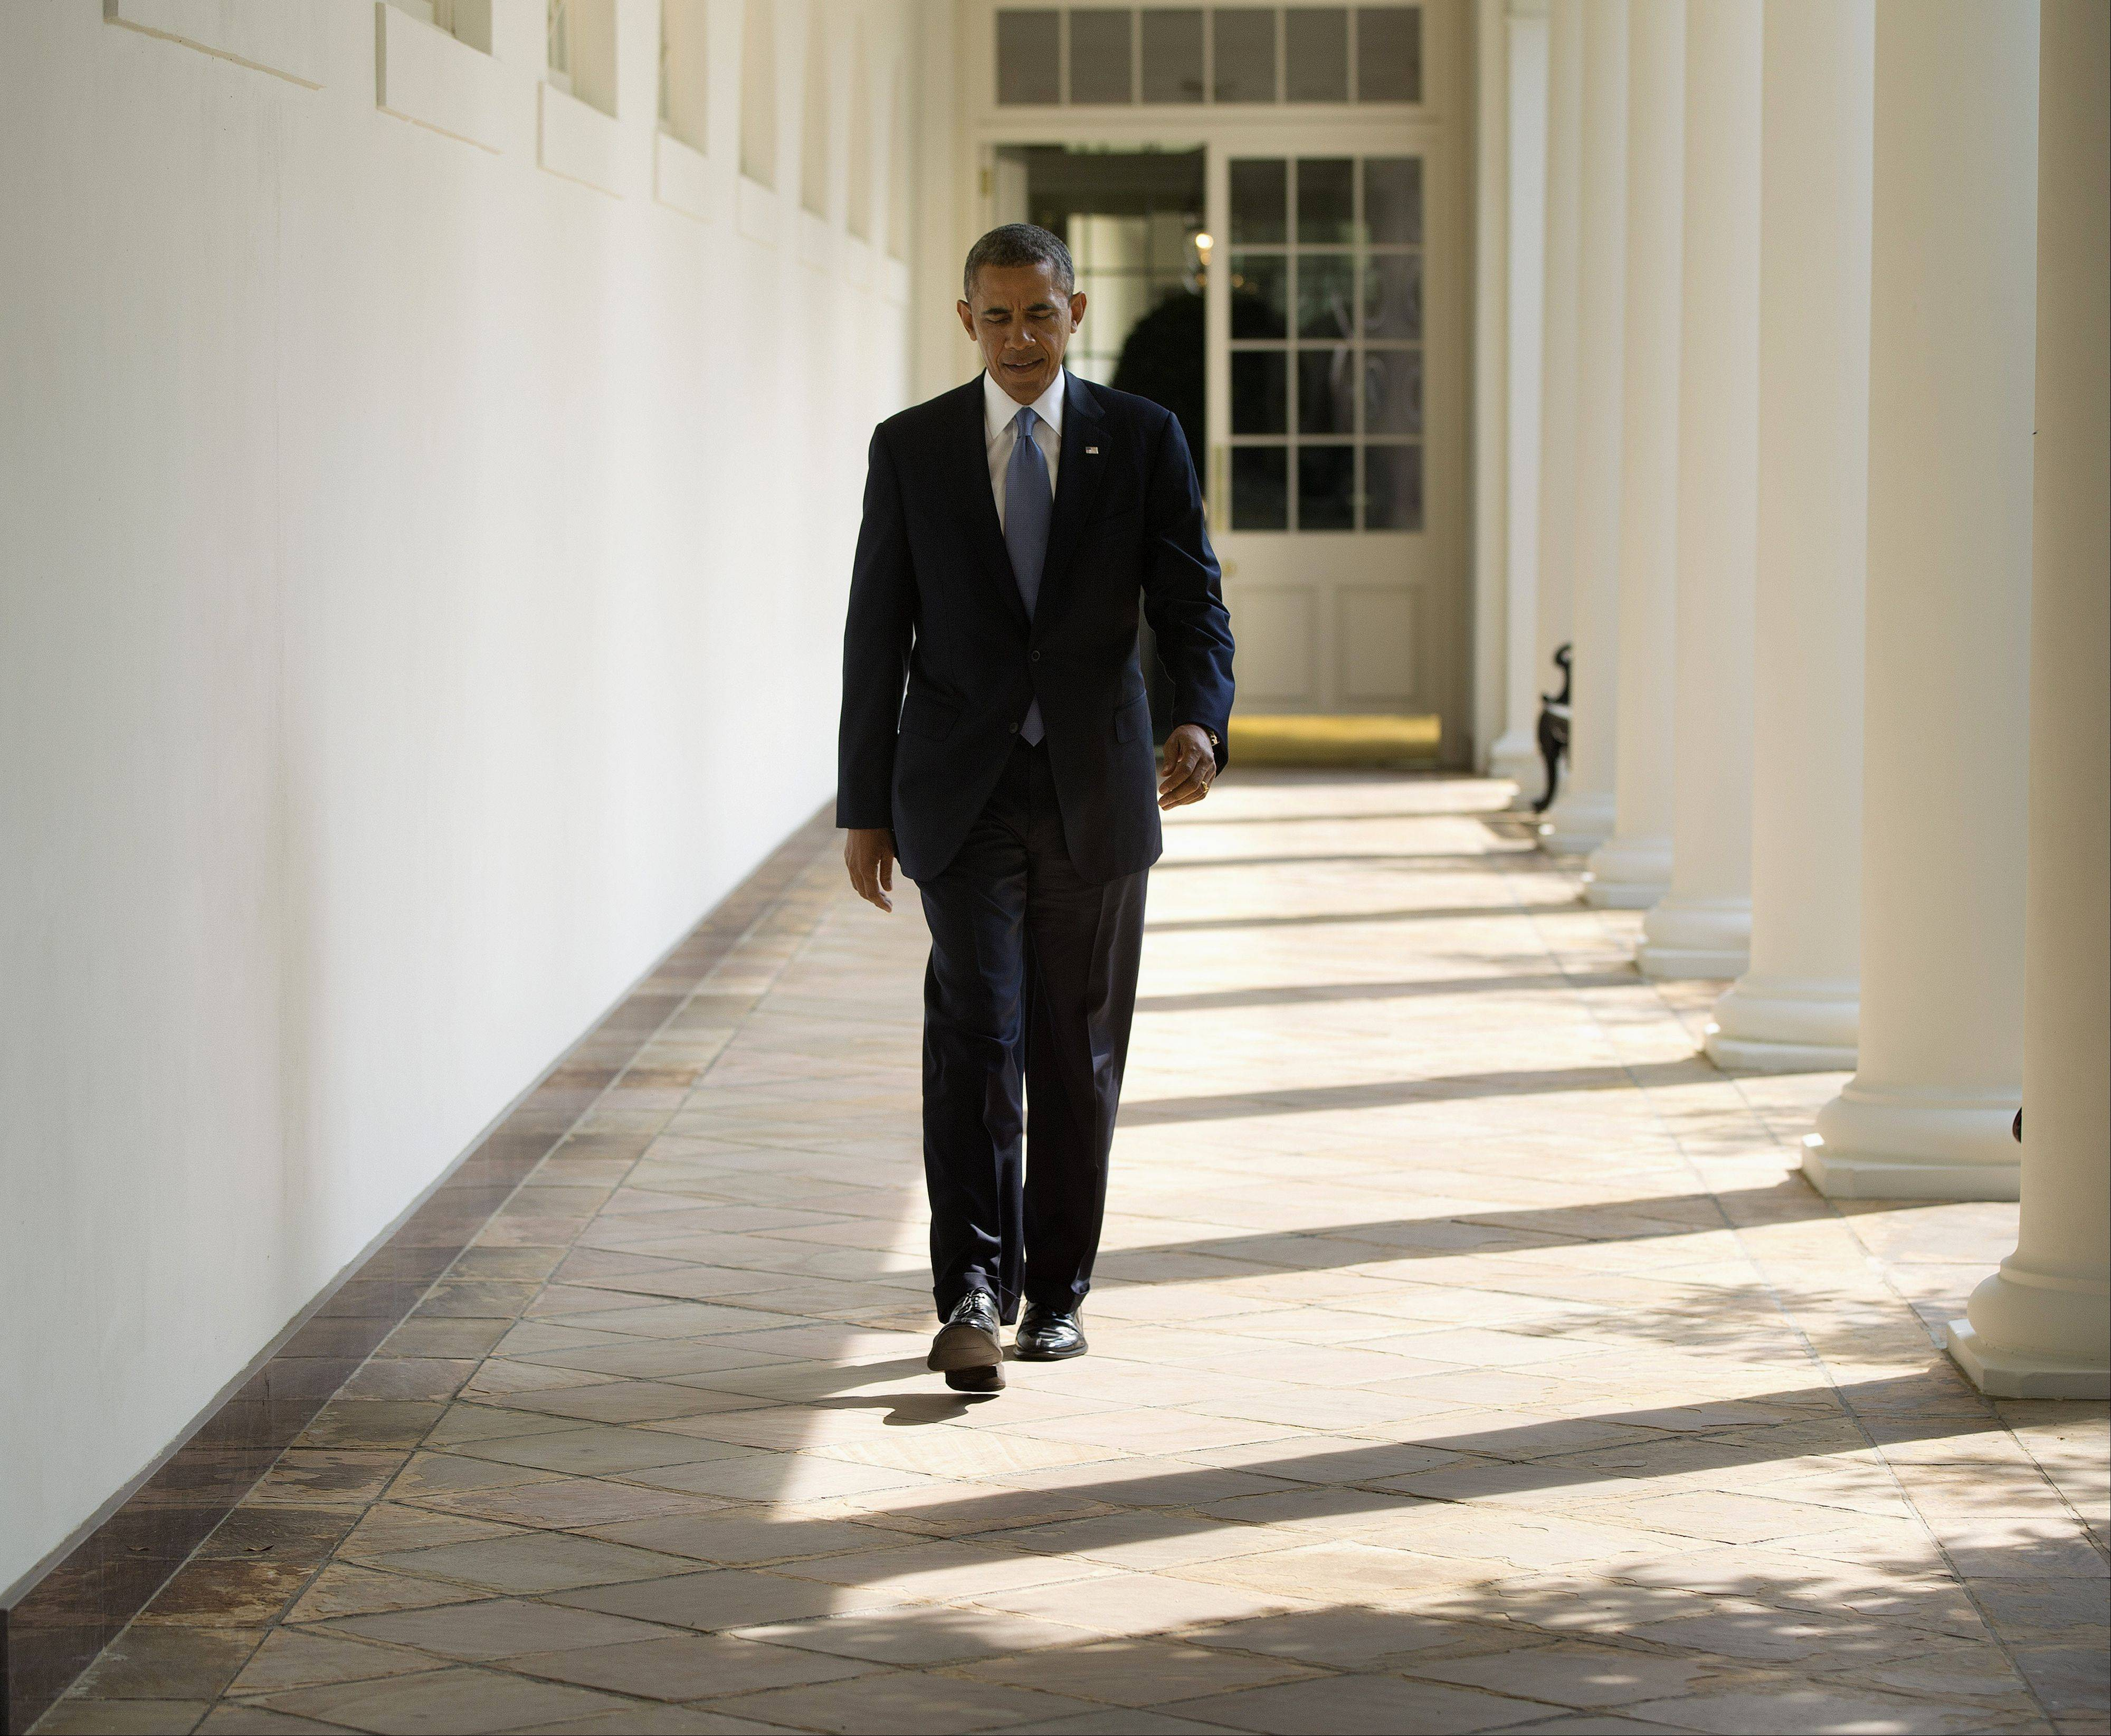 President Barack Obama walks along the West Wing Colonnade toward the Oval Office of the White House in Washington, ahead of his daily briefing Tuesday. Obama will deliver a speech on Syria from the East Room in an address to the national this evening.